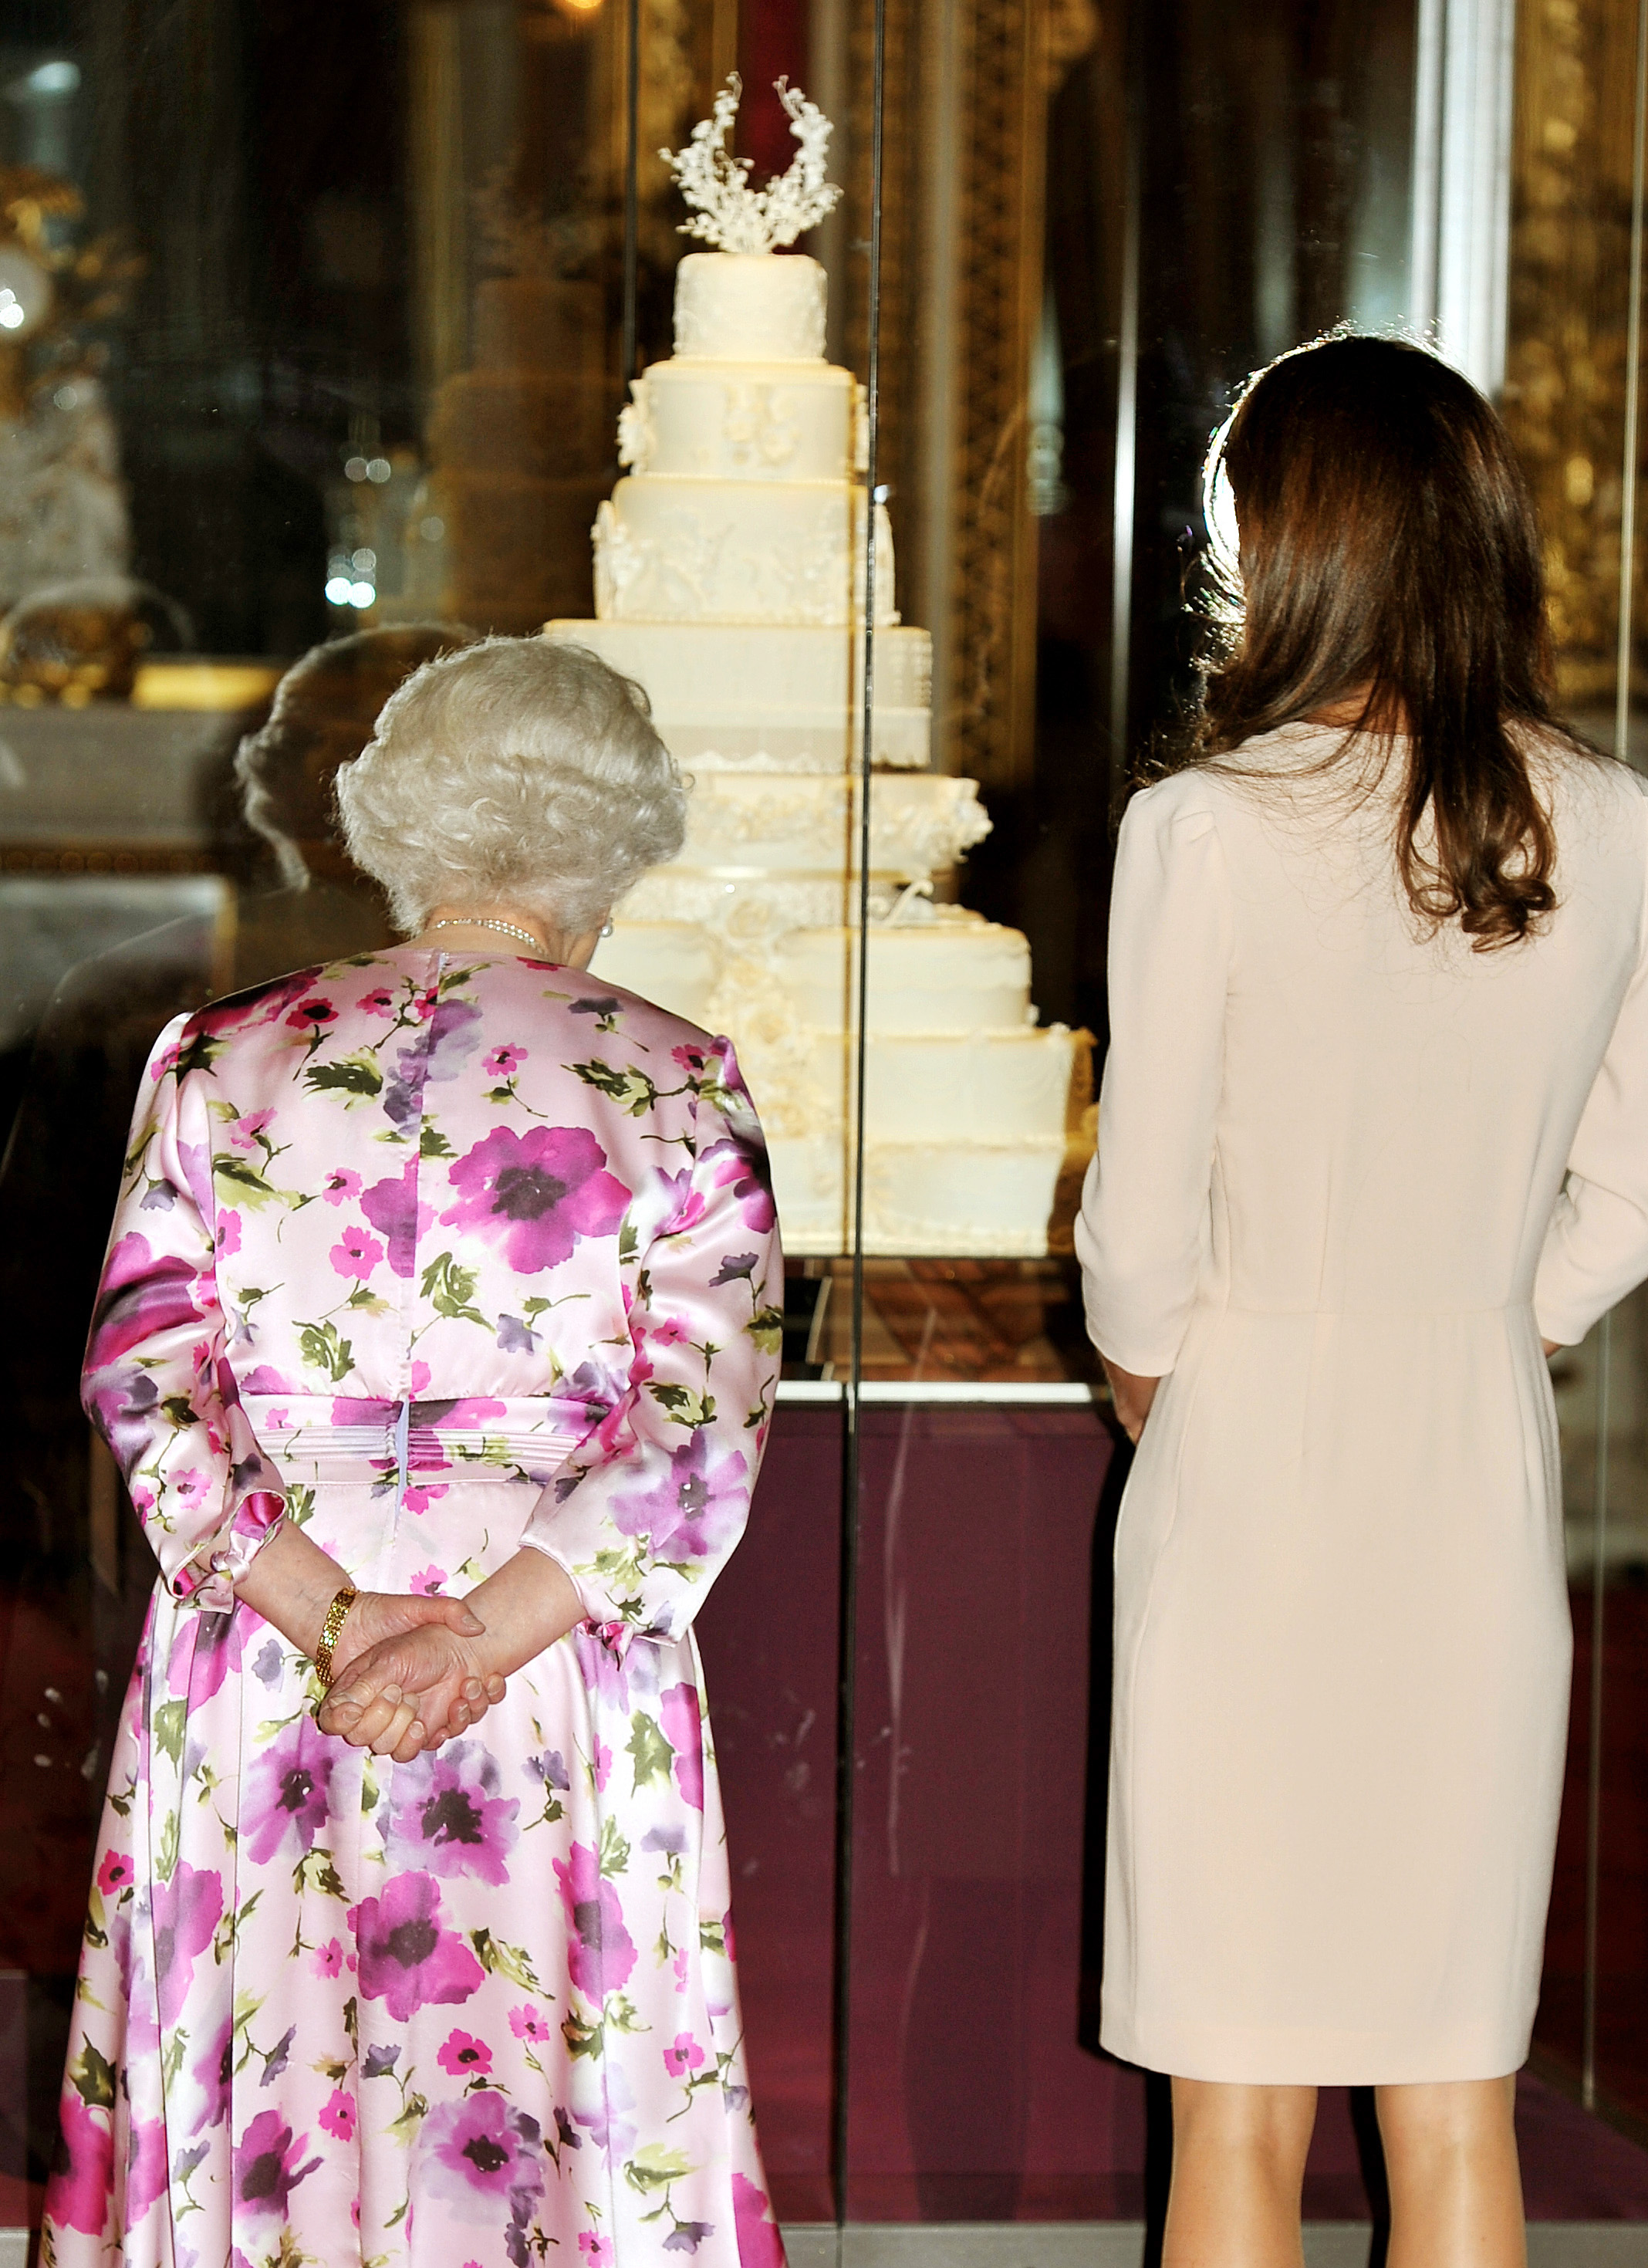 of Kate Middleton and Queen Elizabeth II Viewing